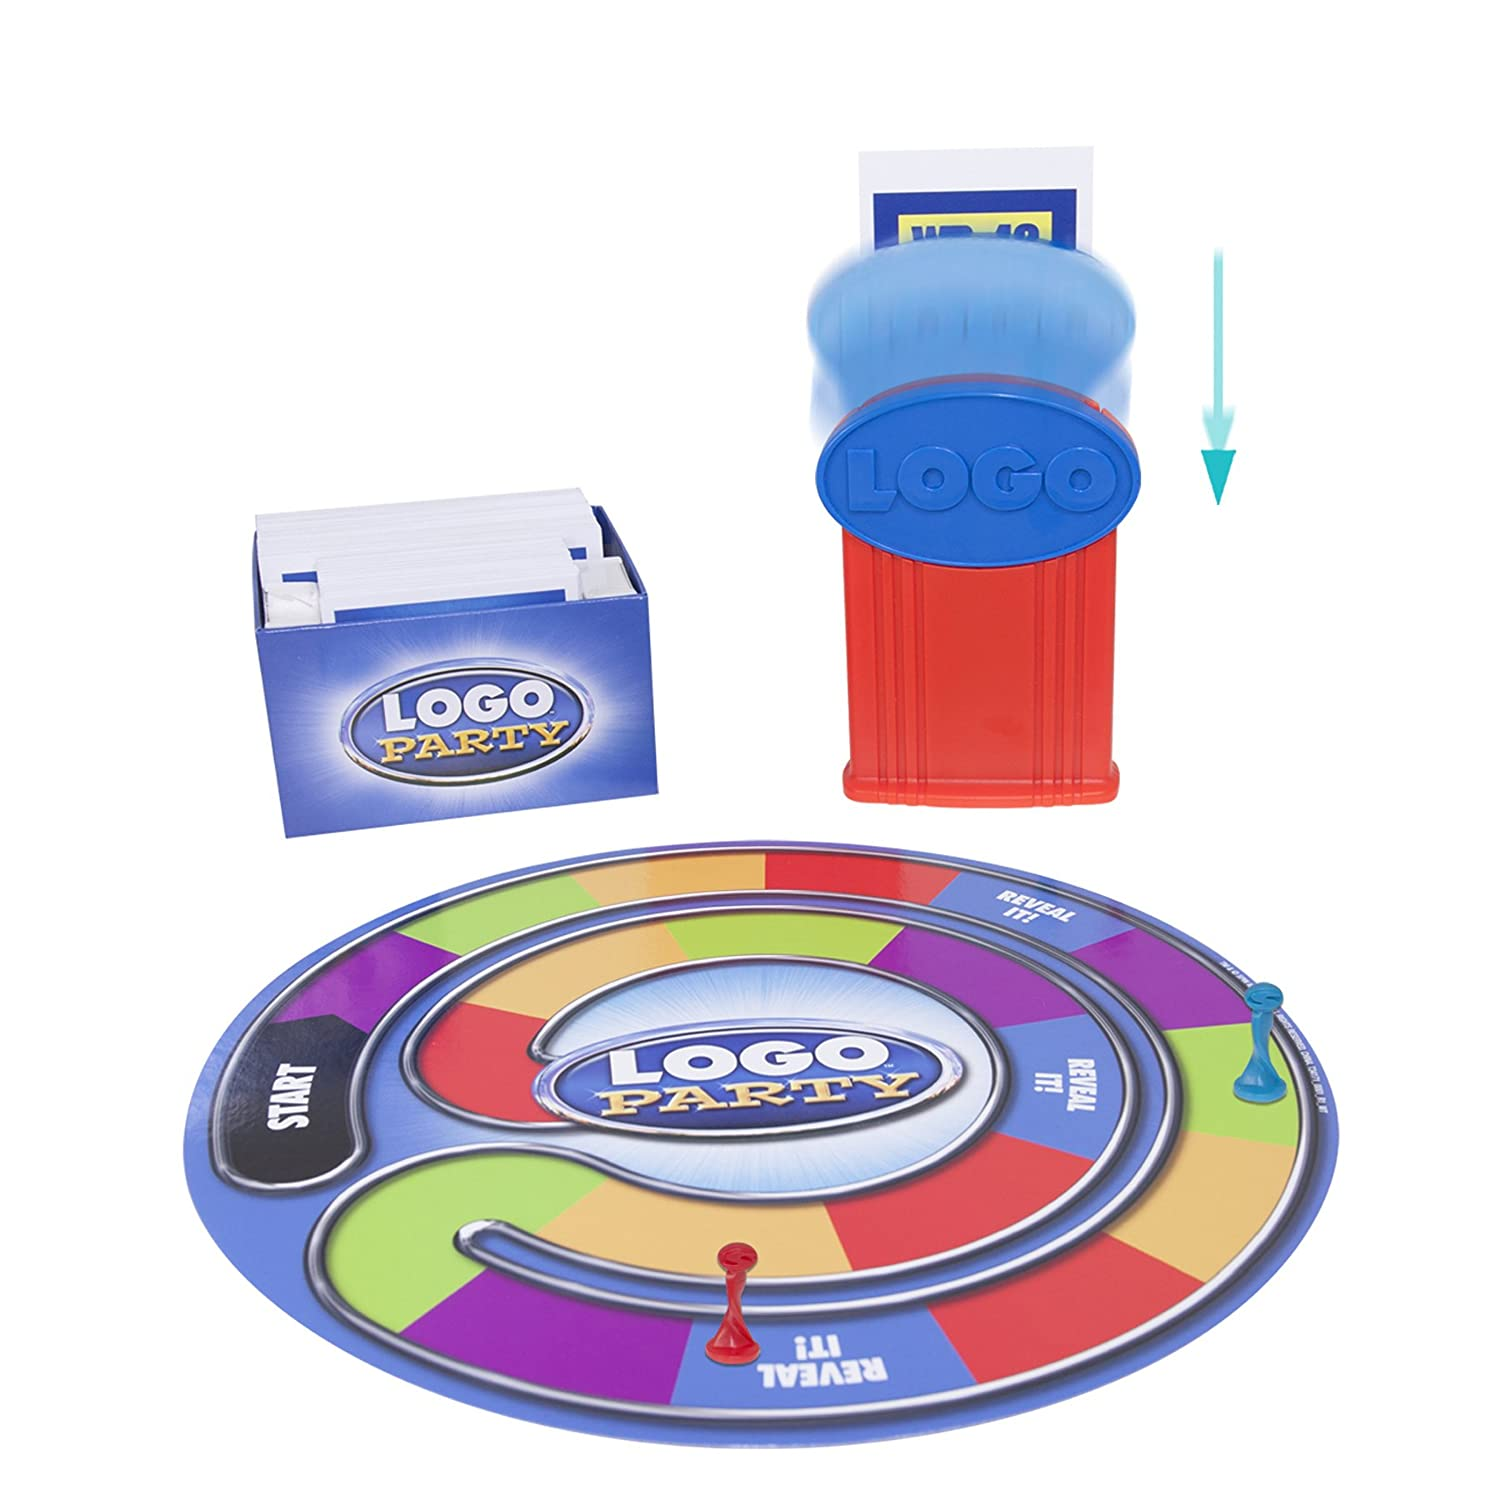 Toys & Games Party Supplies Logo Party Game Spin Master 6020413